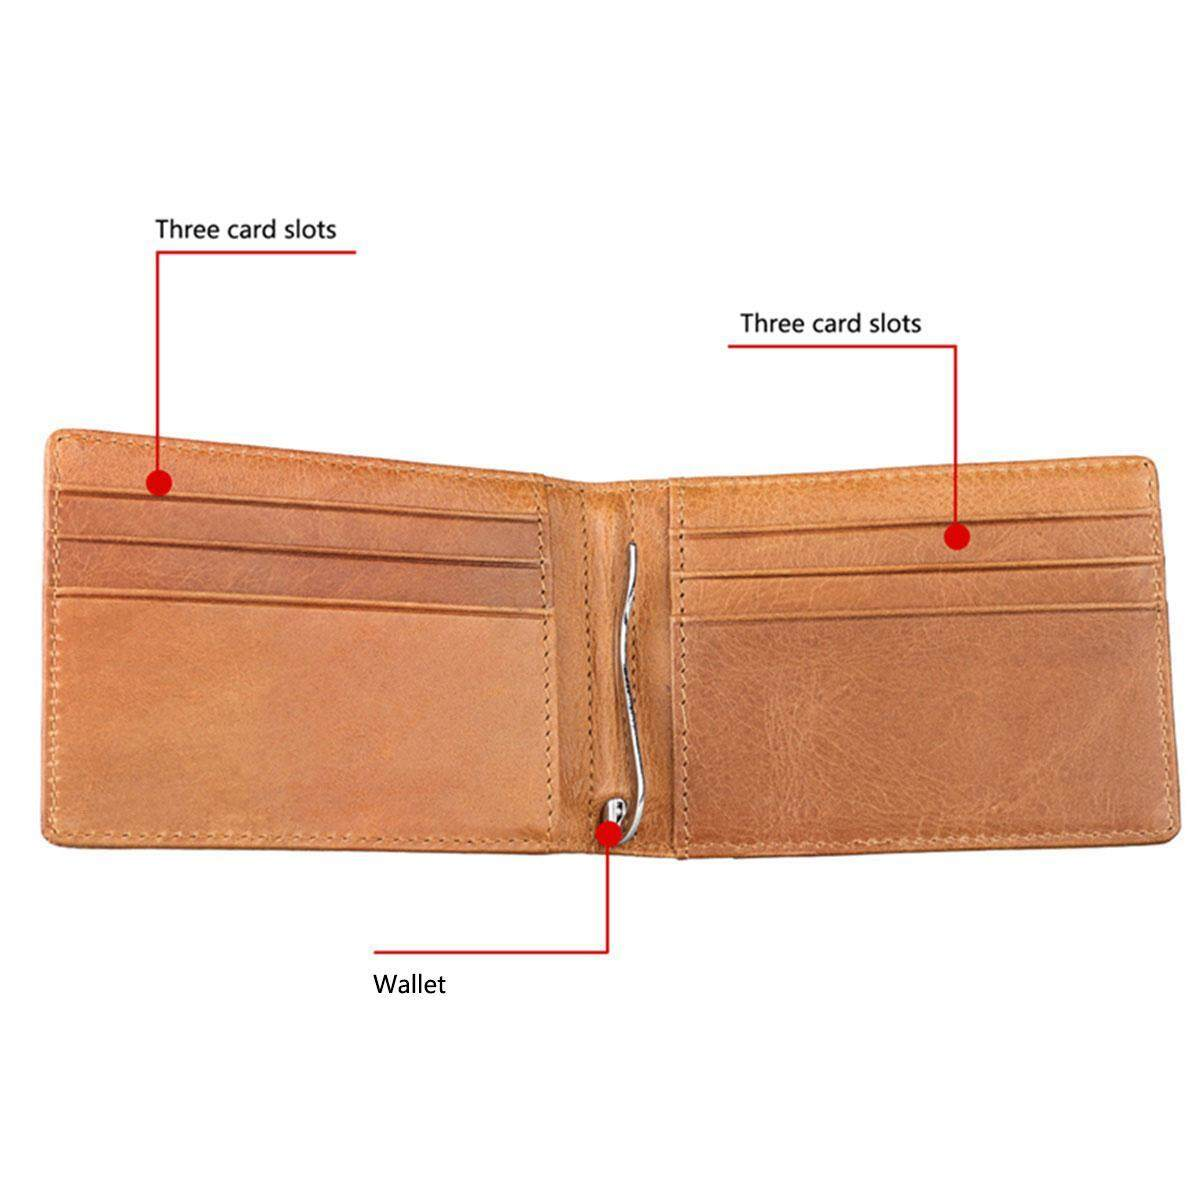 ed3ecf89 SeaLavender Vintage style Leather Silver Money Clip Multi Card Wallet  Wallet,Rfid Classical Business Casual Slim Wallet Holder for Men and Women